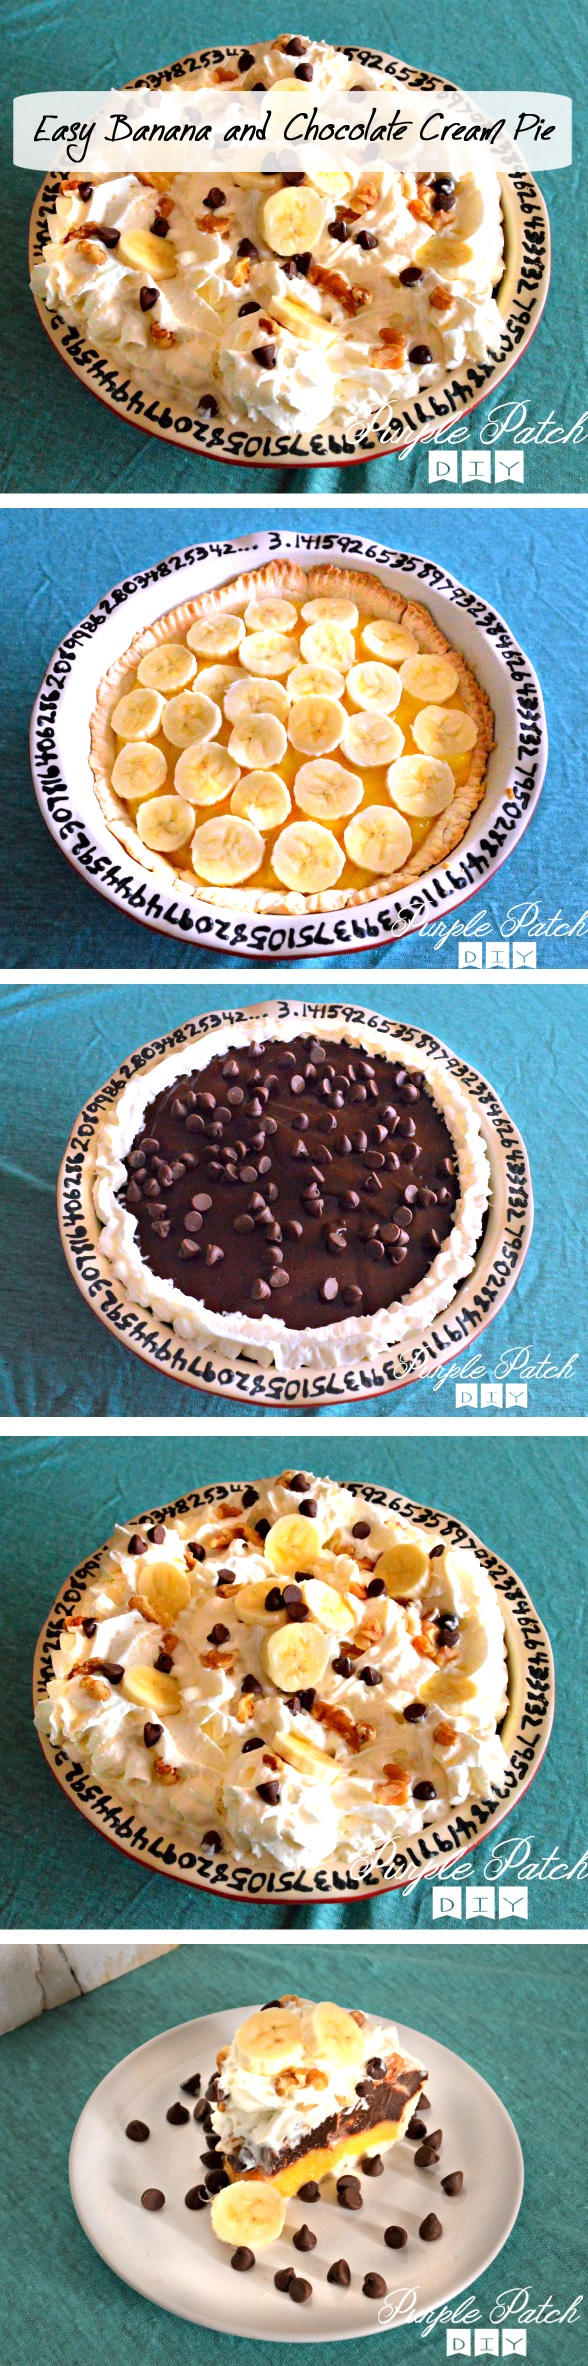 Banana-chocolate-cream-pie